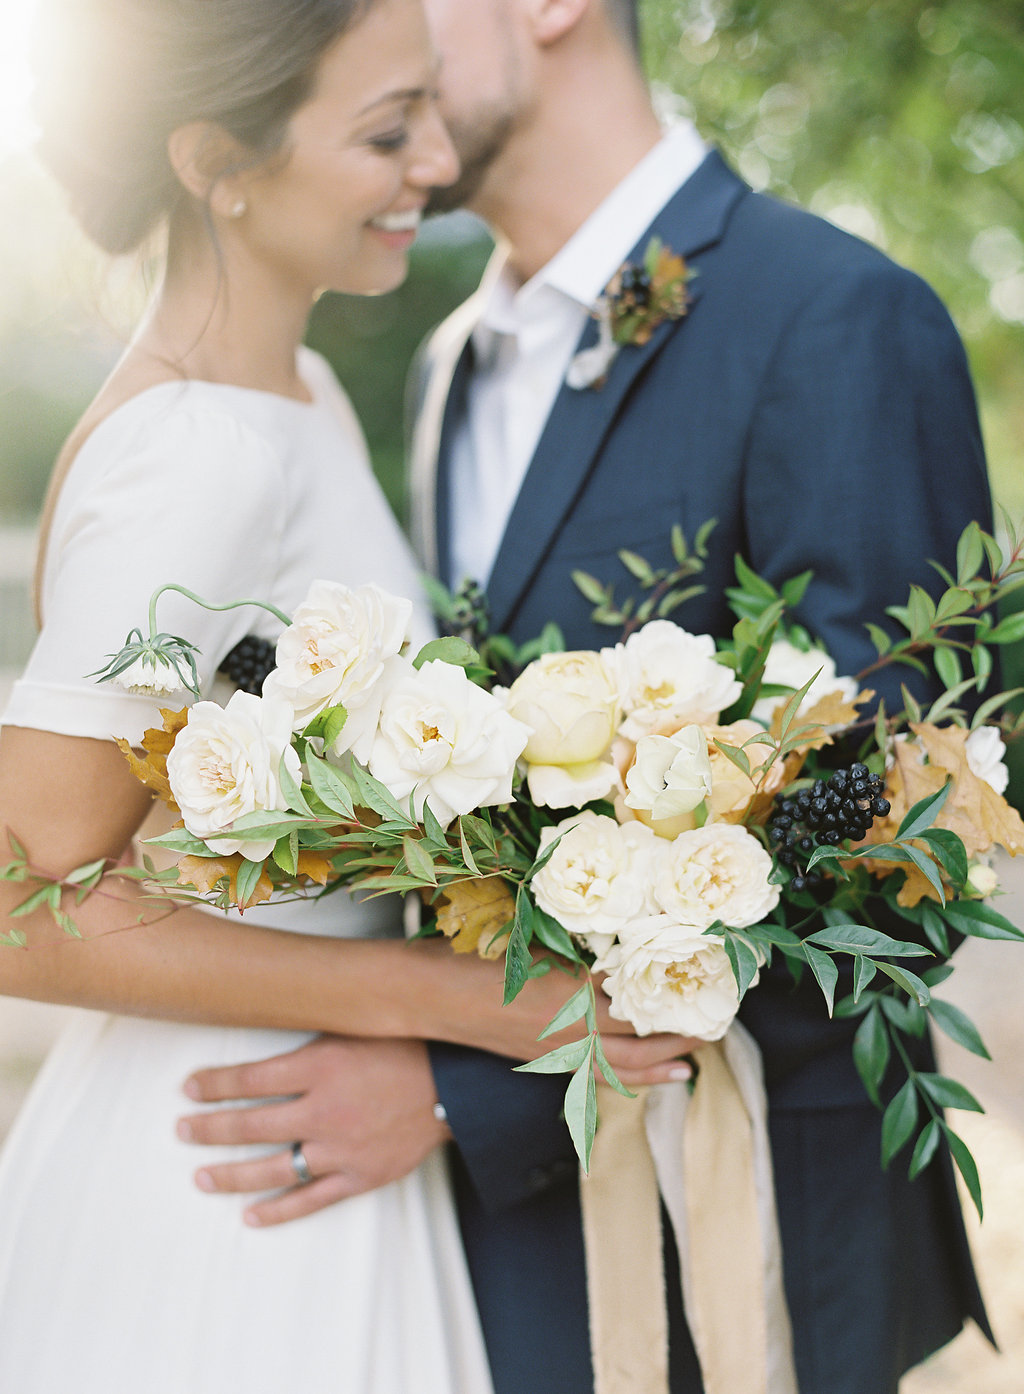 French Inspired Fall Wedding with Fine Art Destination Wedding Planner East Made Event Company and DC Film Photographer Vicki Grafton Photography at Tudor Place in Washington DC-26.jpg